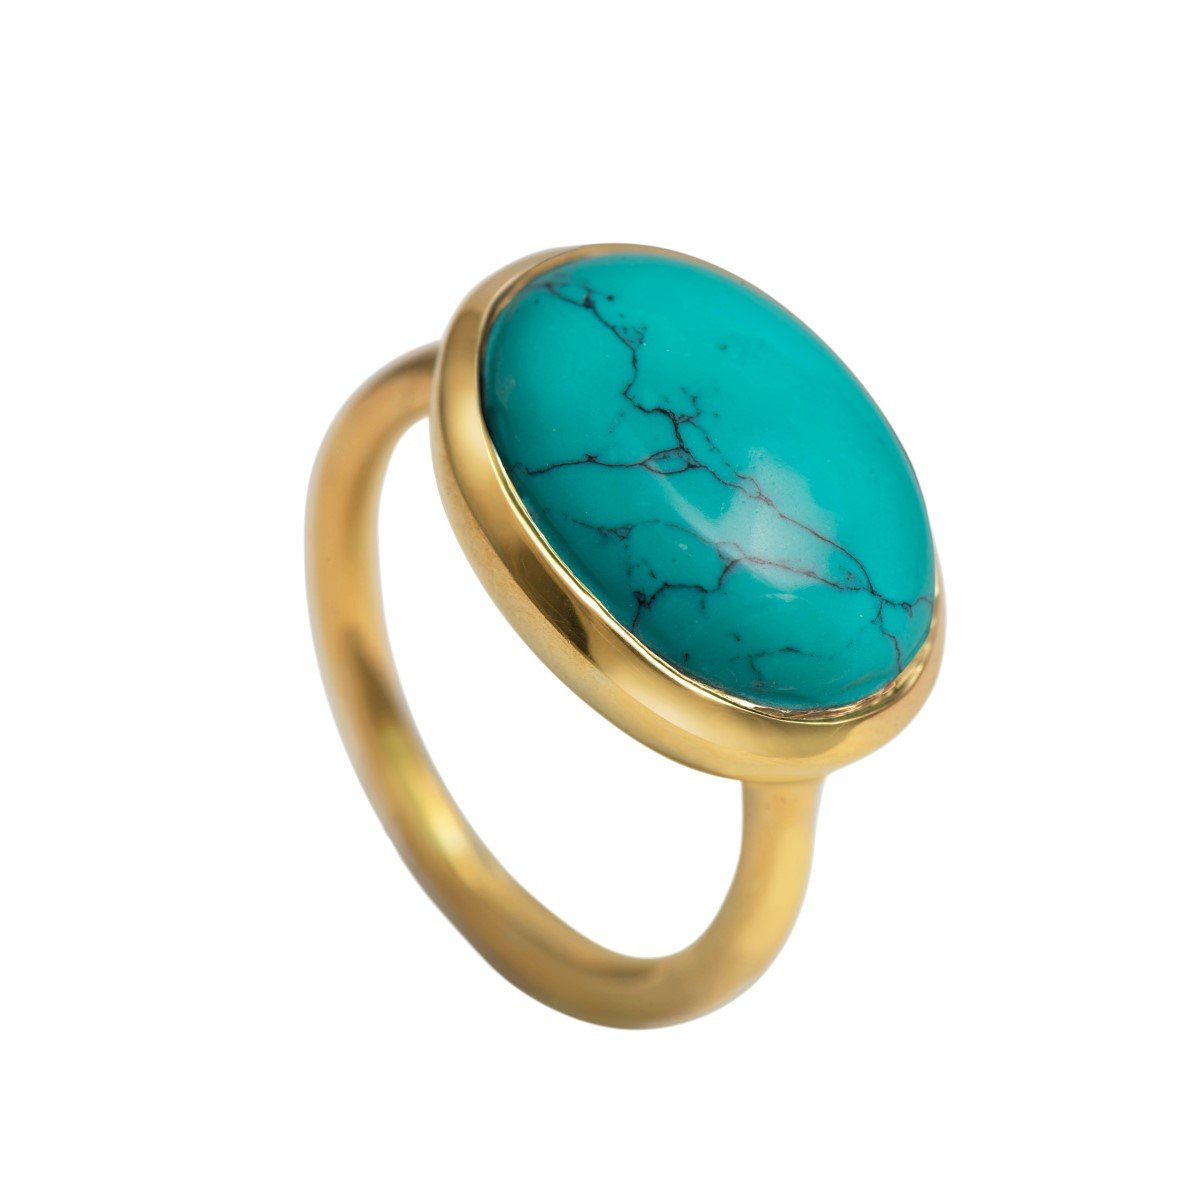 Cabochon Oval Cut Natural Gemstone Gold Plated Sterling Silver Ring - Turquoise